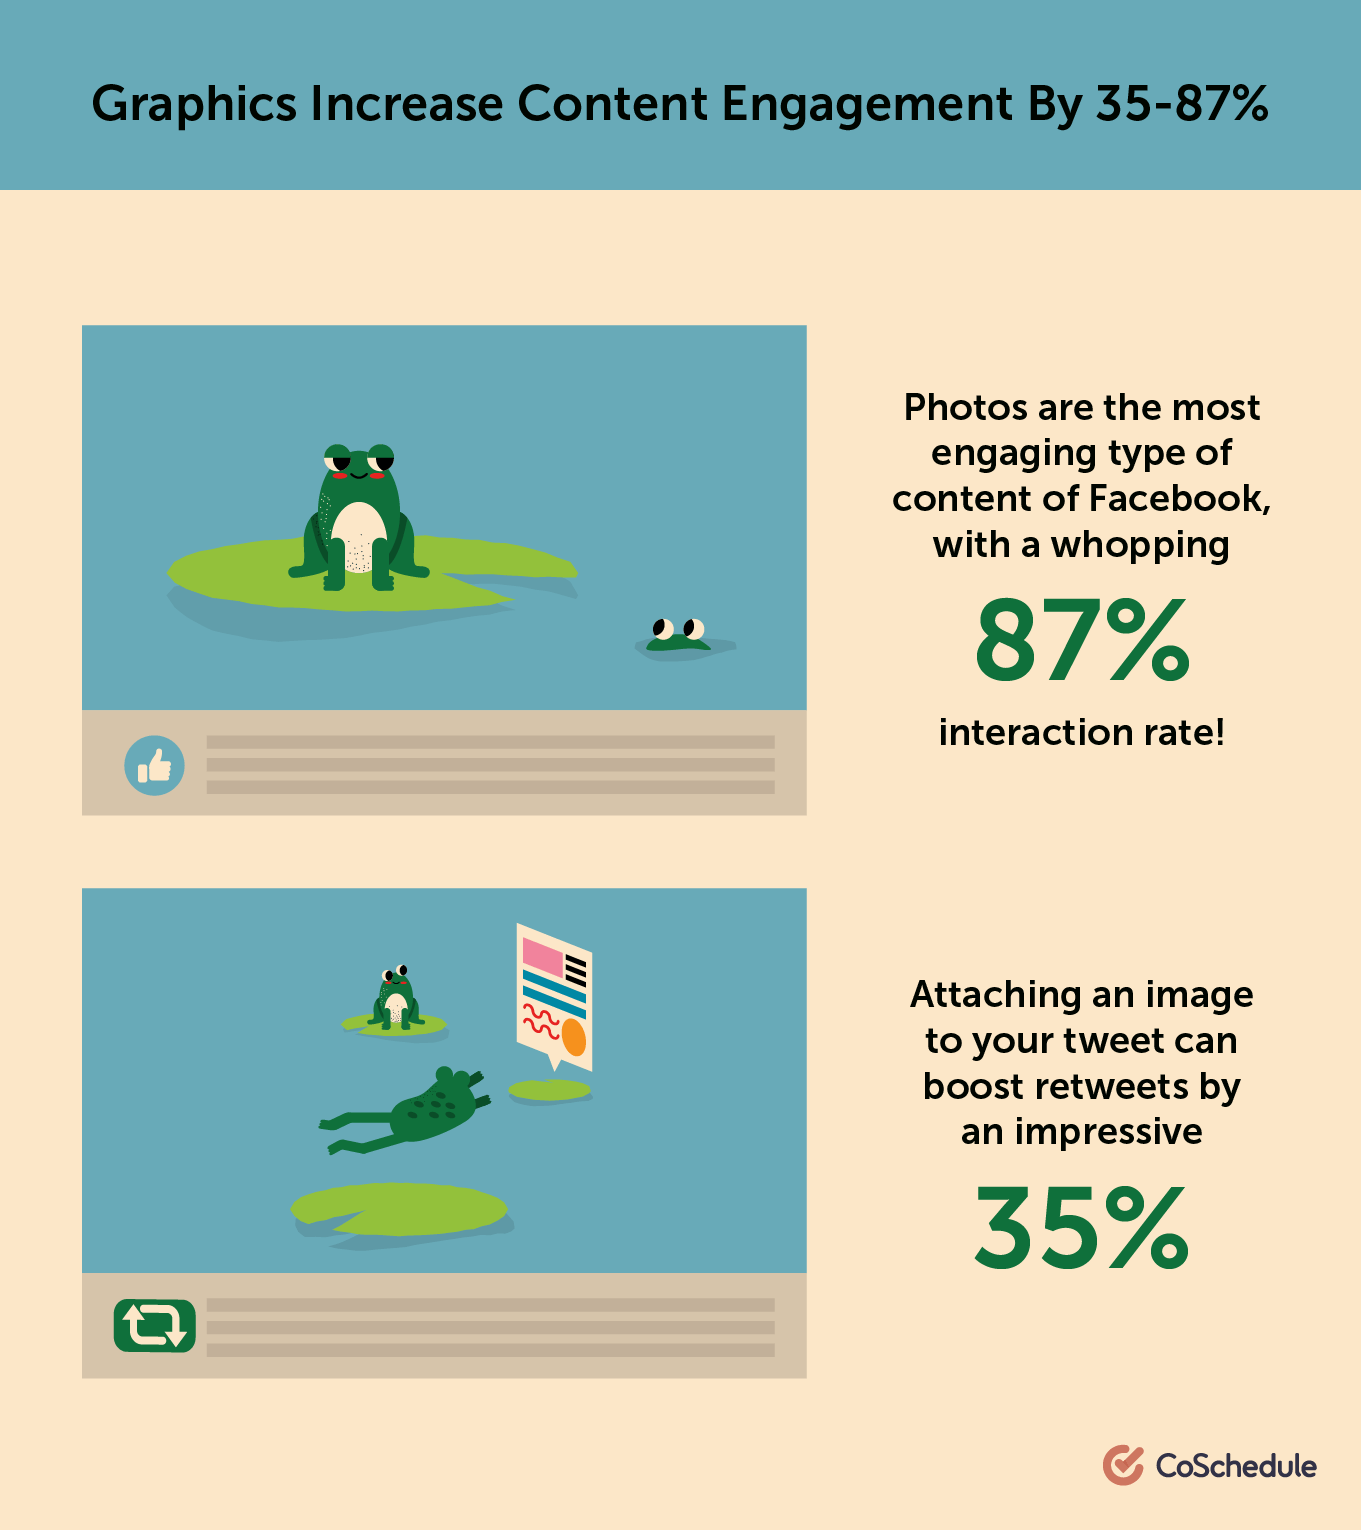 Graphics increase content engagement